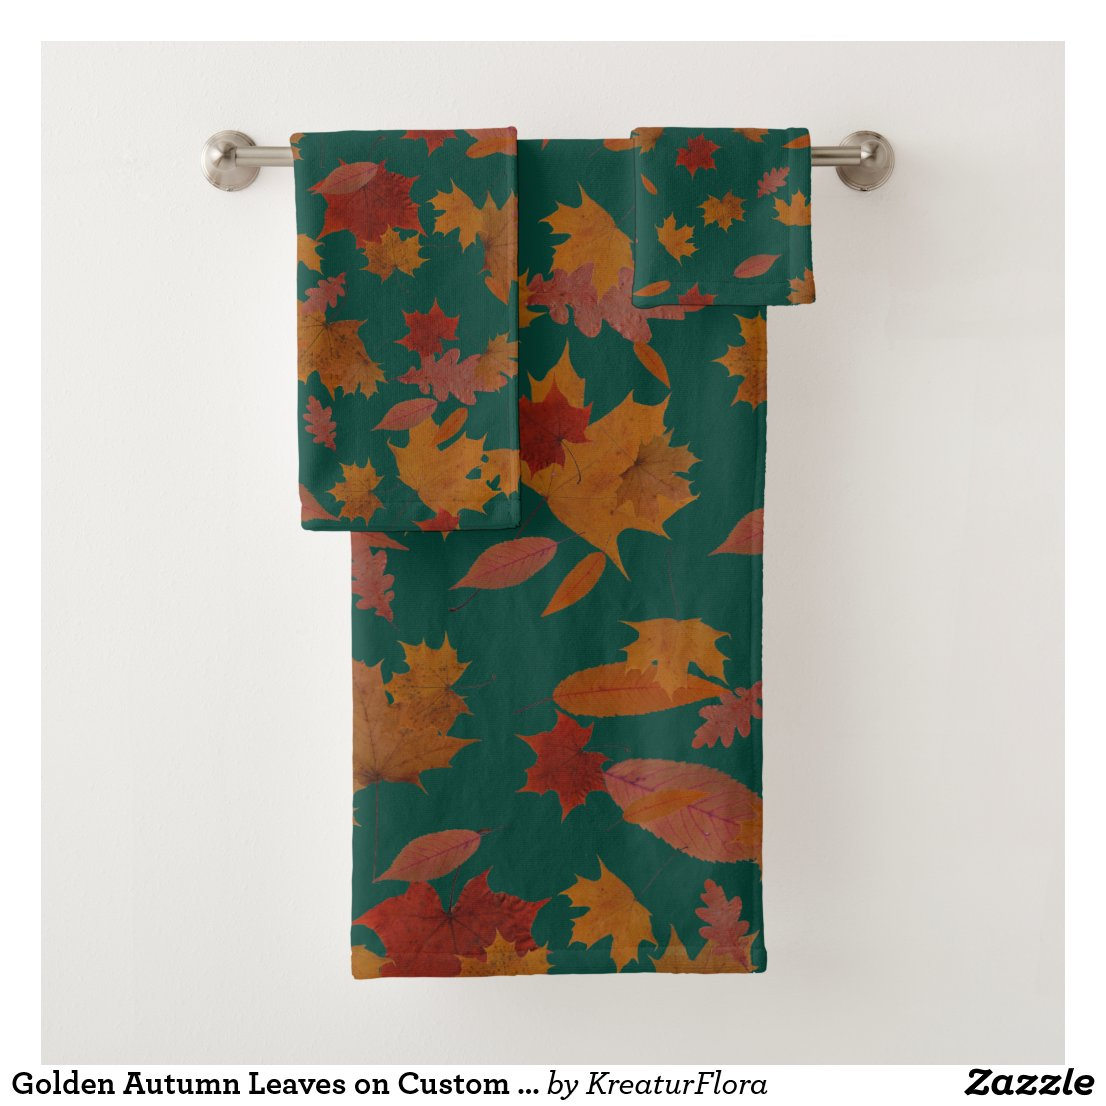 Golden Autumn Leaves on Custom Color Turquoise